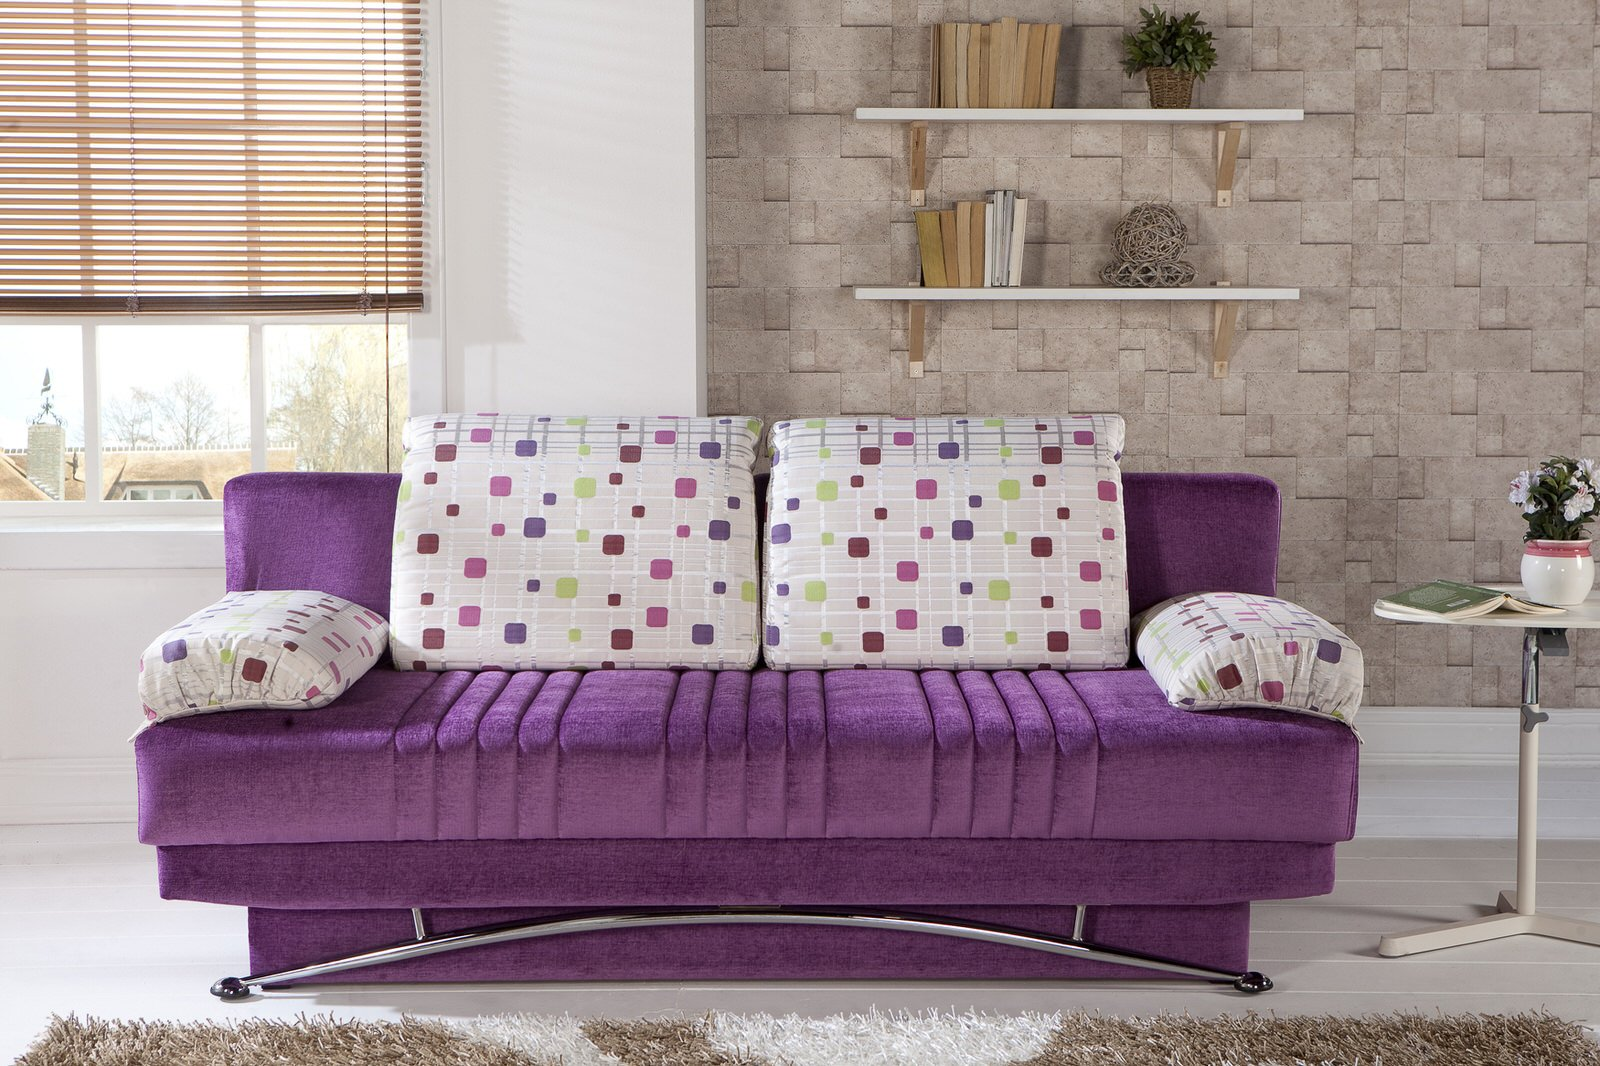 Fantasy Corbin Purple Convertible Sofa Bed By Sunset